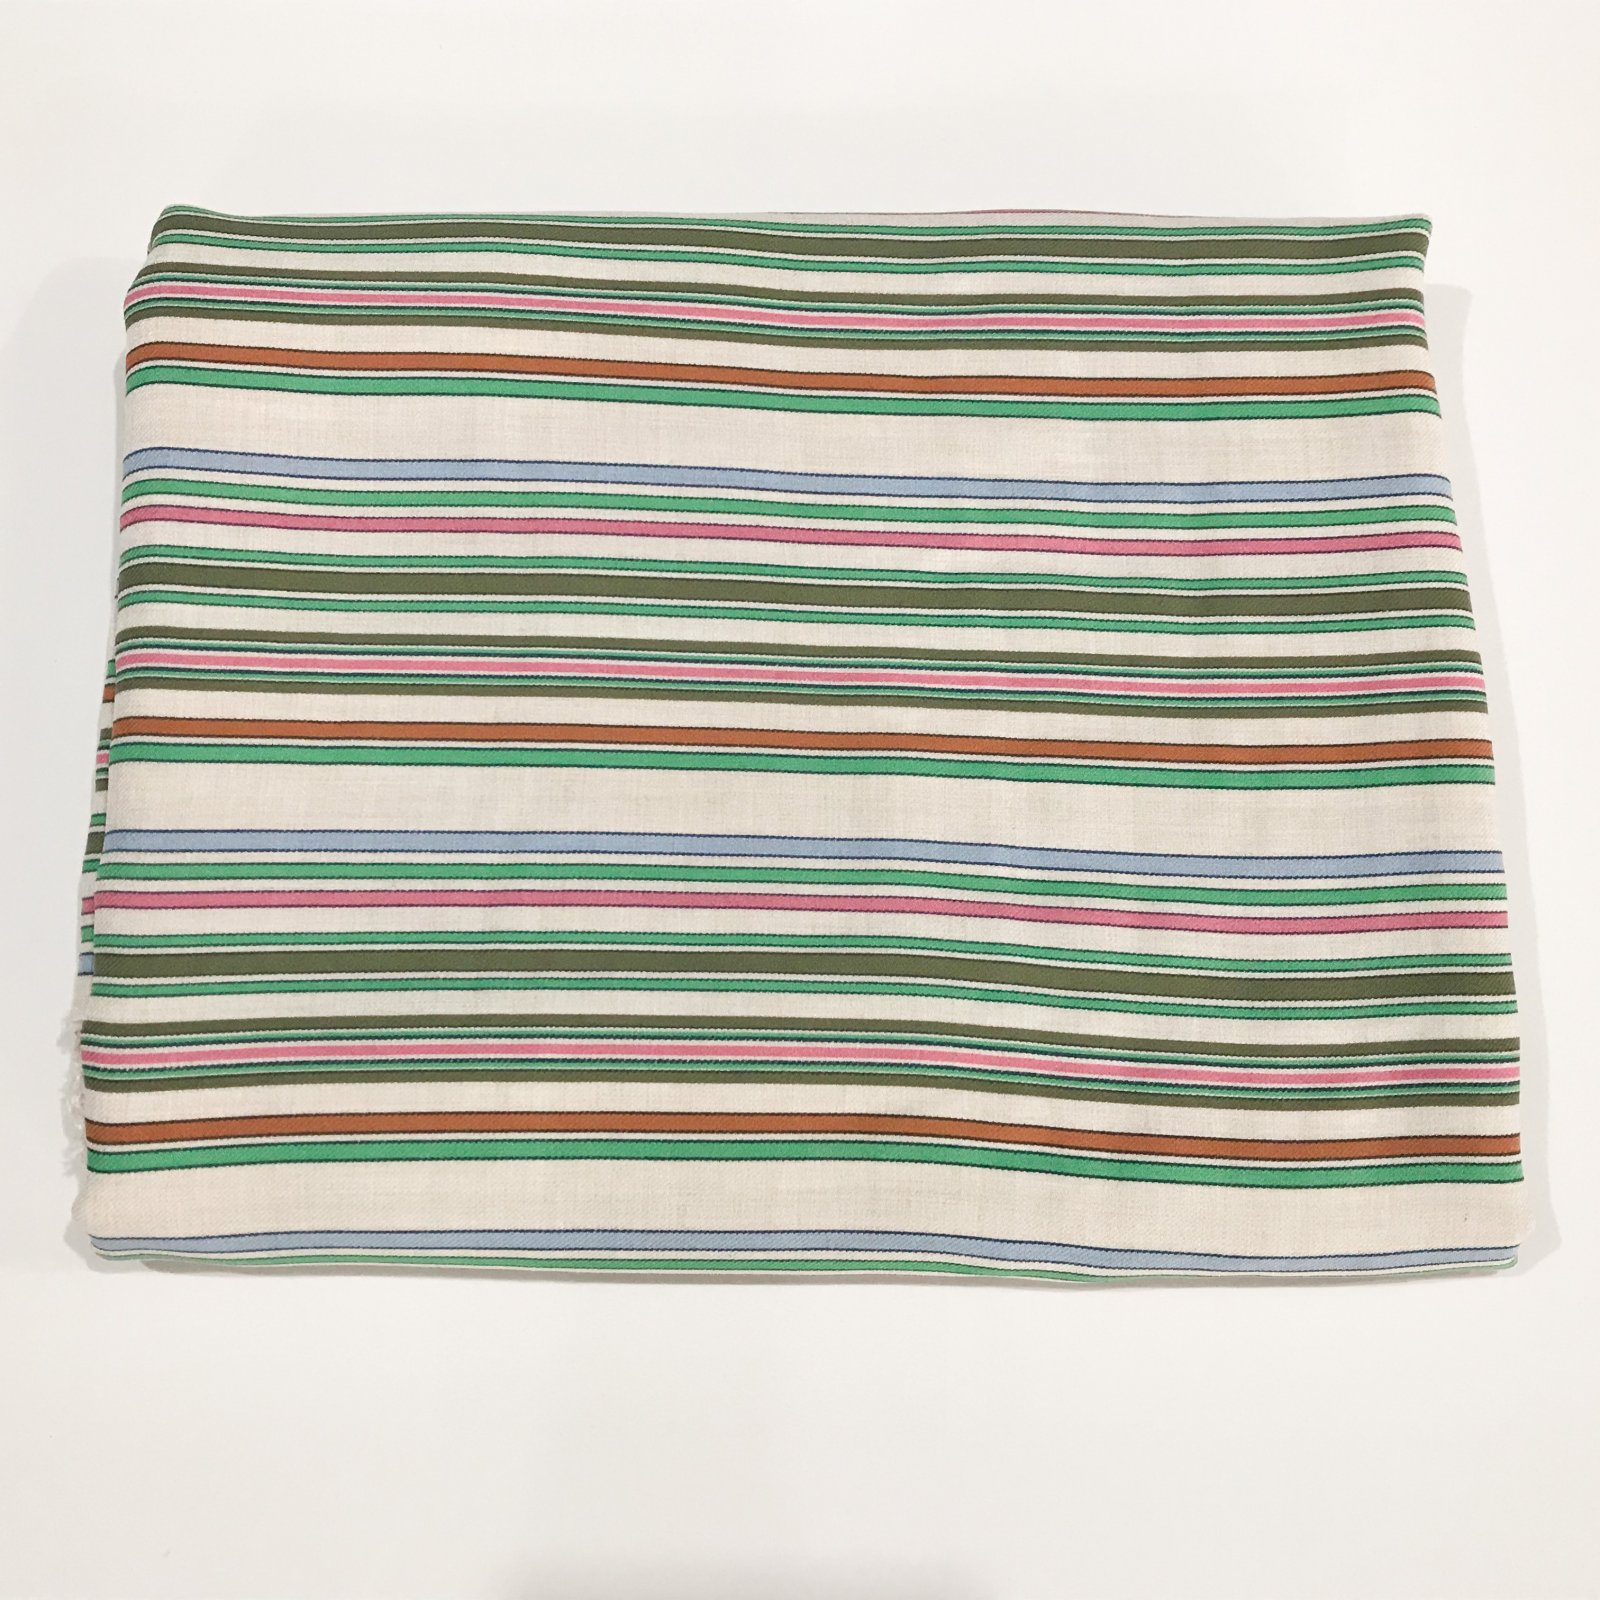 2 yards + 21 inches - Viscose Stripes in Jade and Pink